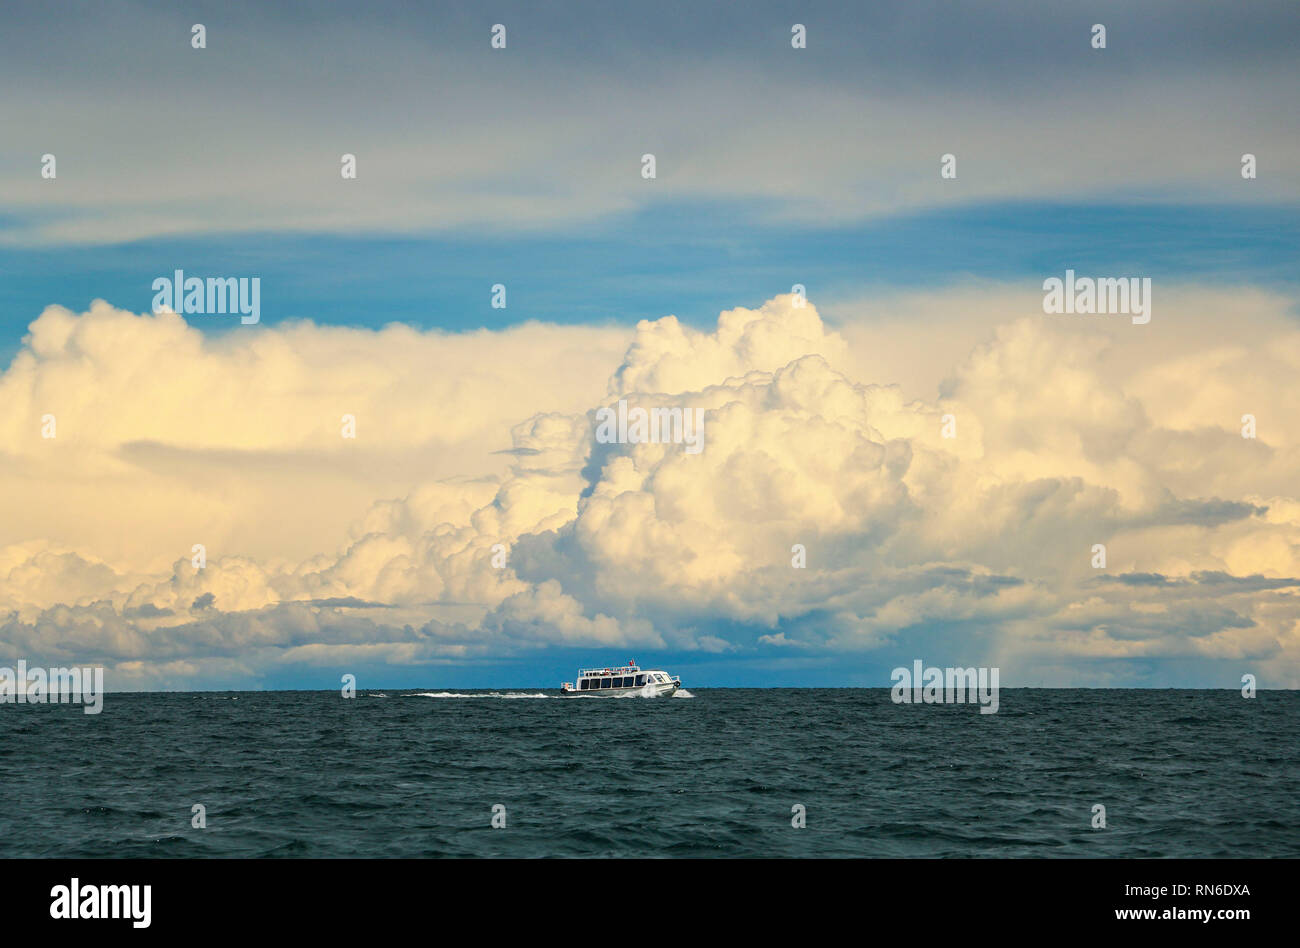 Beautiful view Titicaca lake with a motor boat on the horizon near Puno, Peru, South America - Stock Image